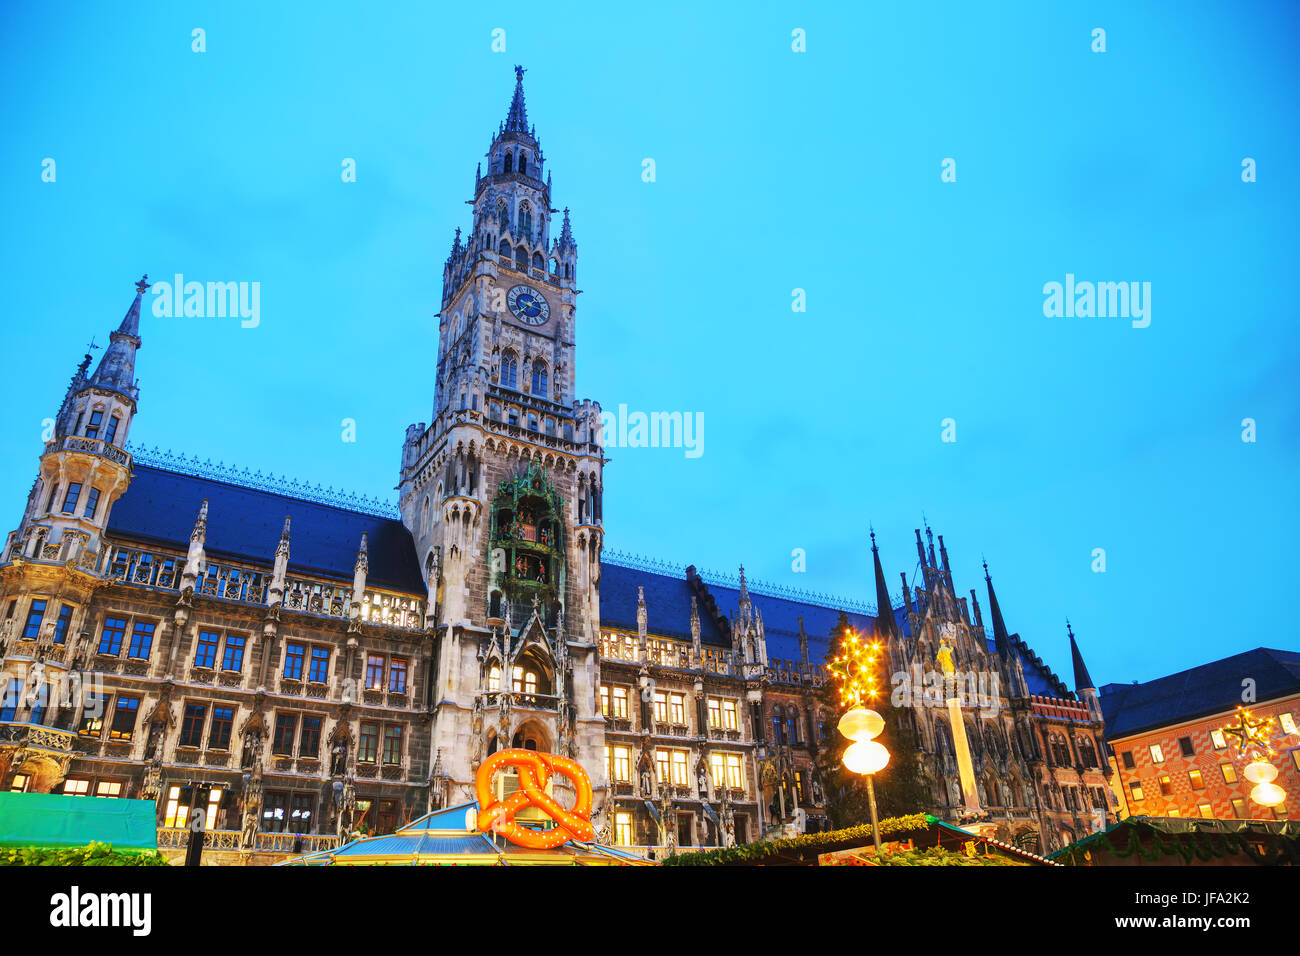 Overview of Marienplatz in Munich Stock Photo